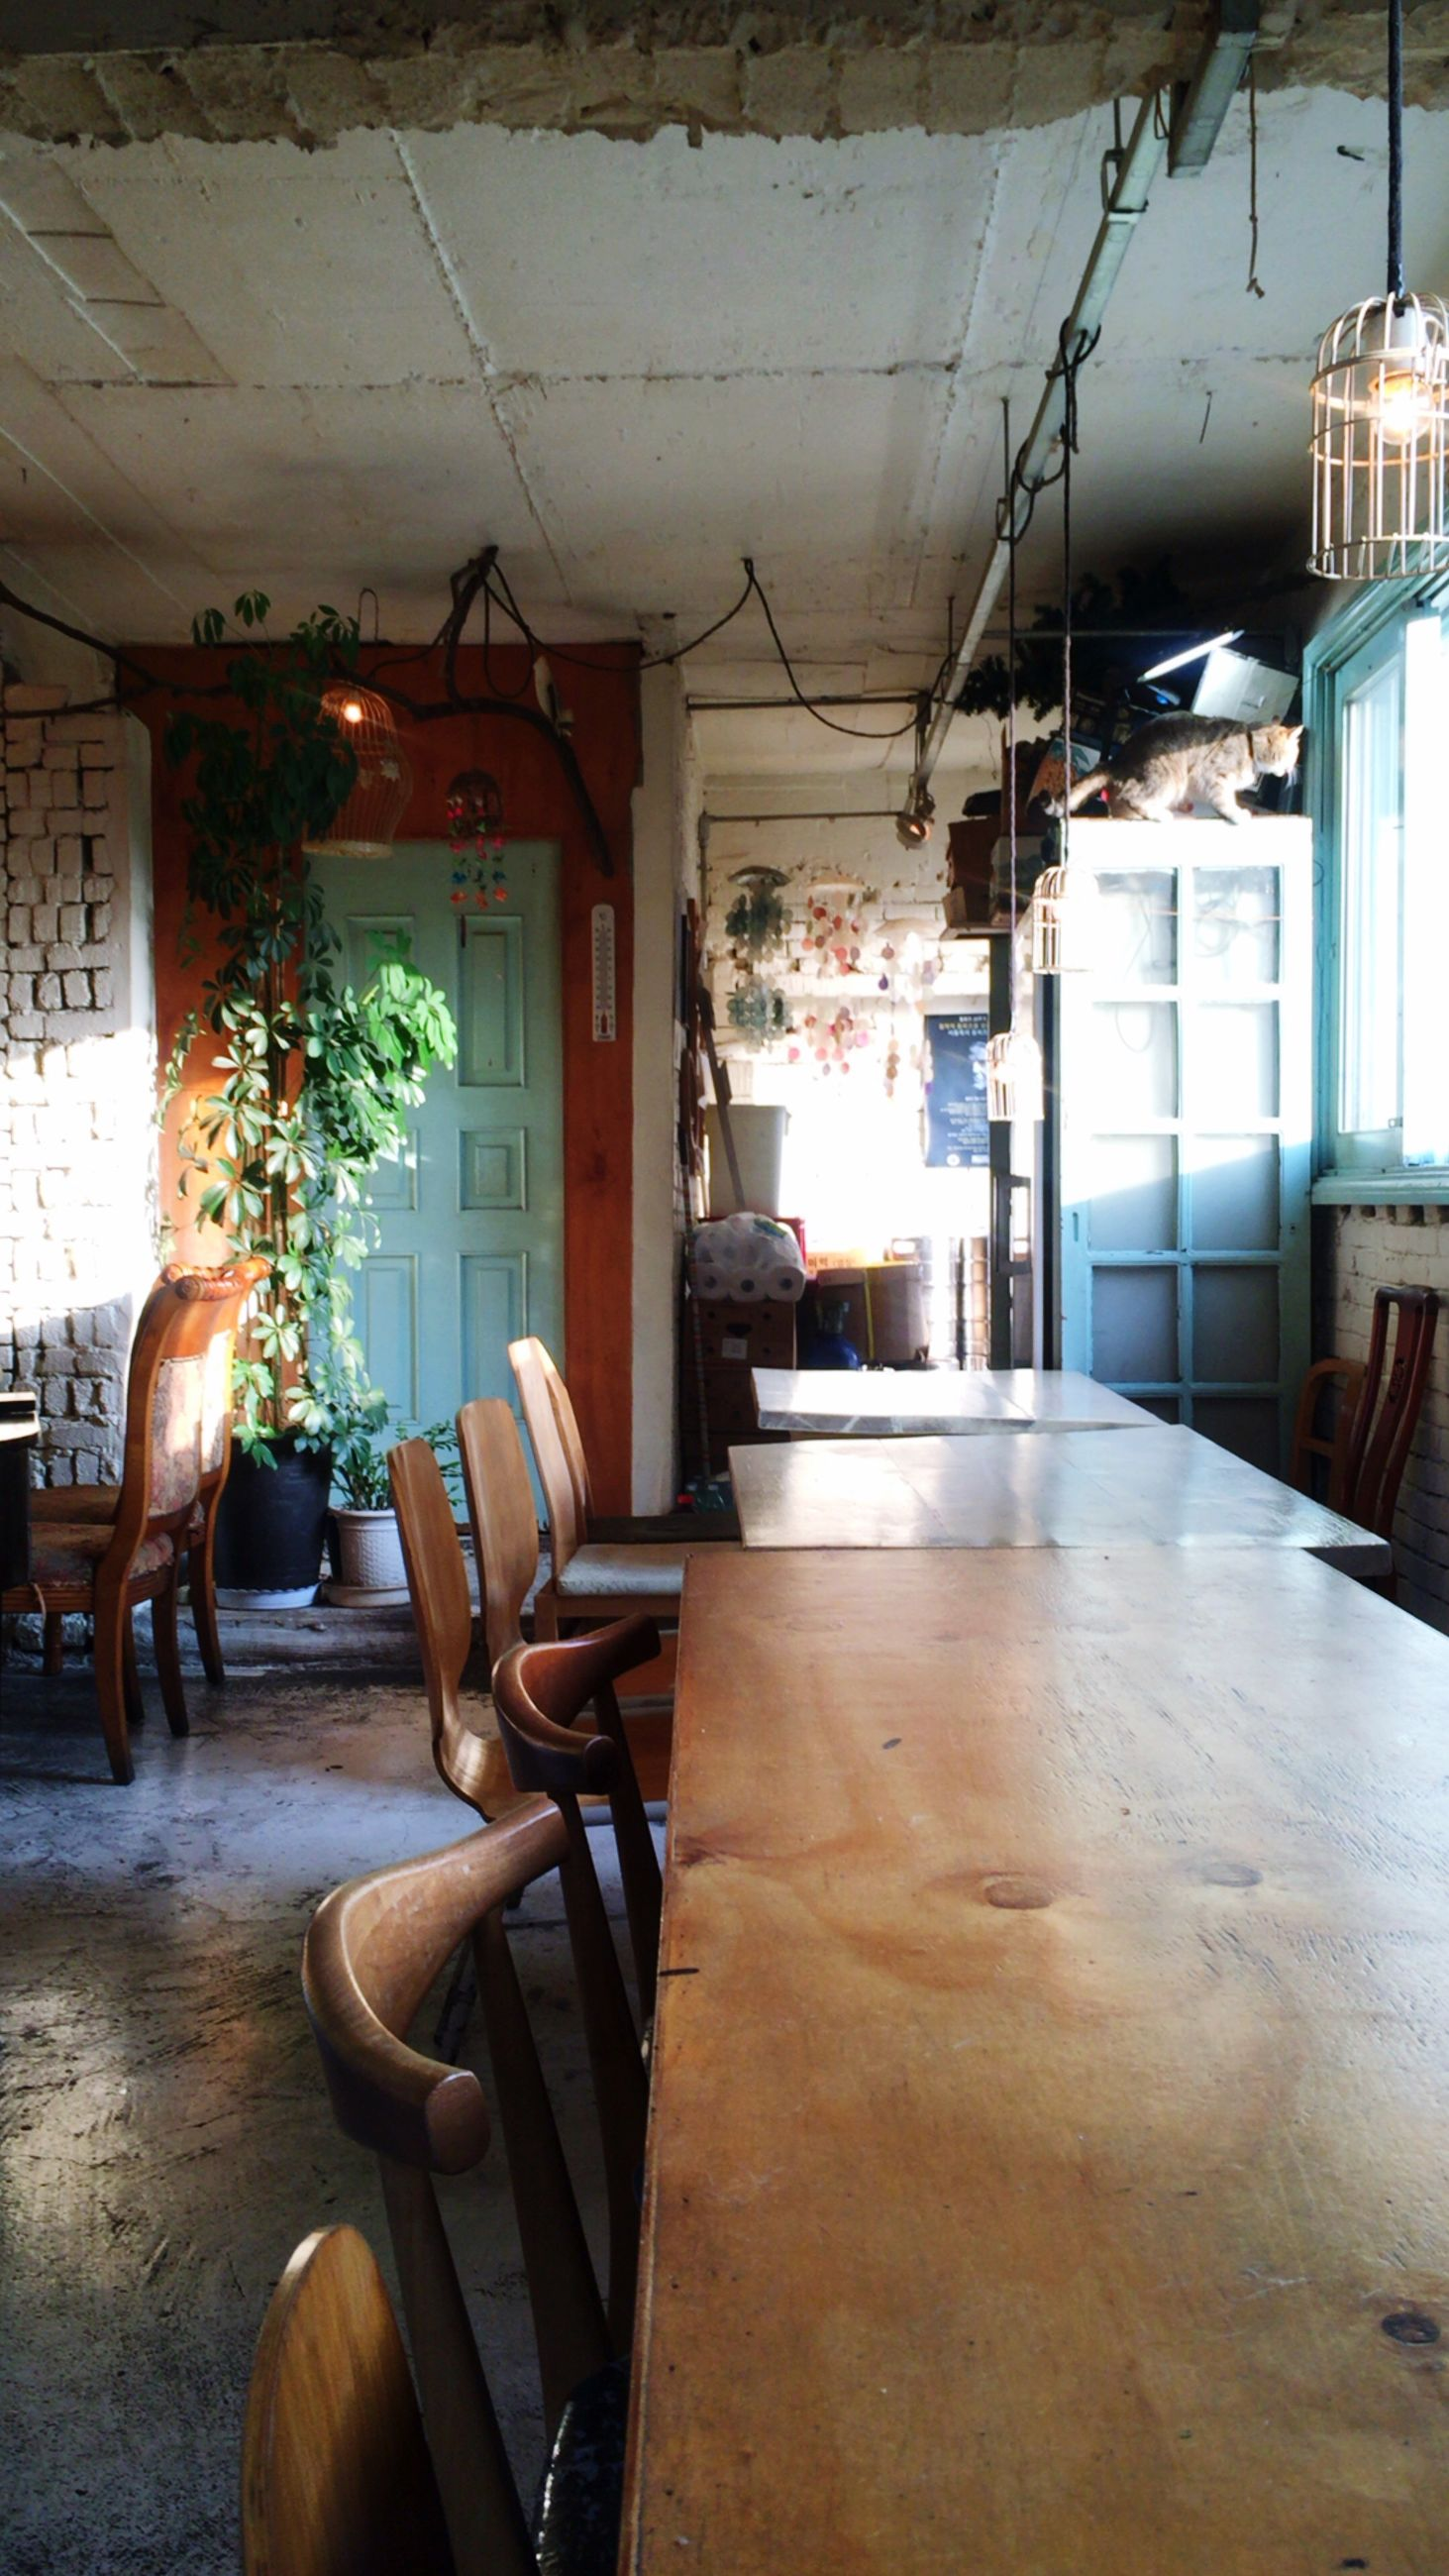 indoors, chair, table, absence, architecture, built structure, house, window, home interior, empty, furniture, domestic room, restaurant, interior, day, sunlight, flooring, no people, messy, room